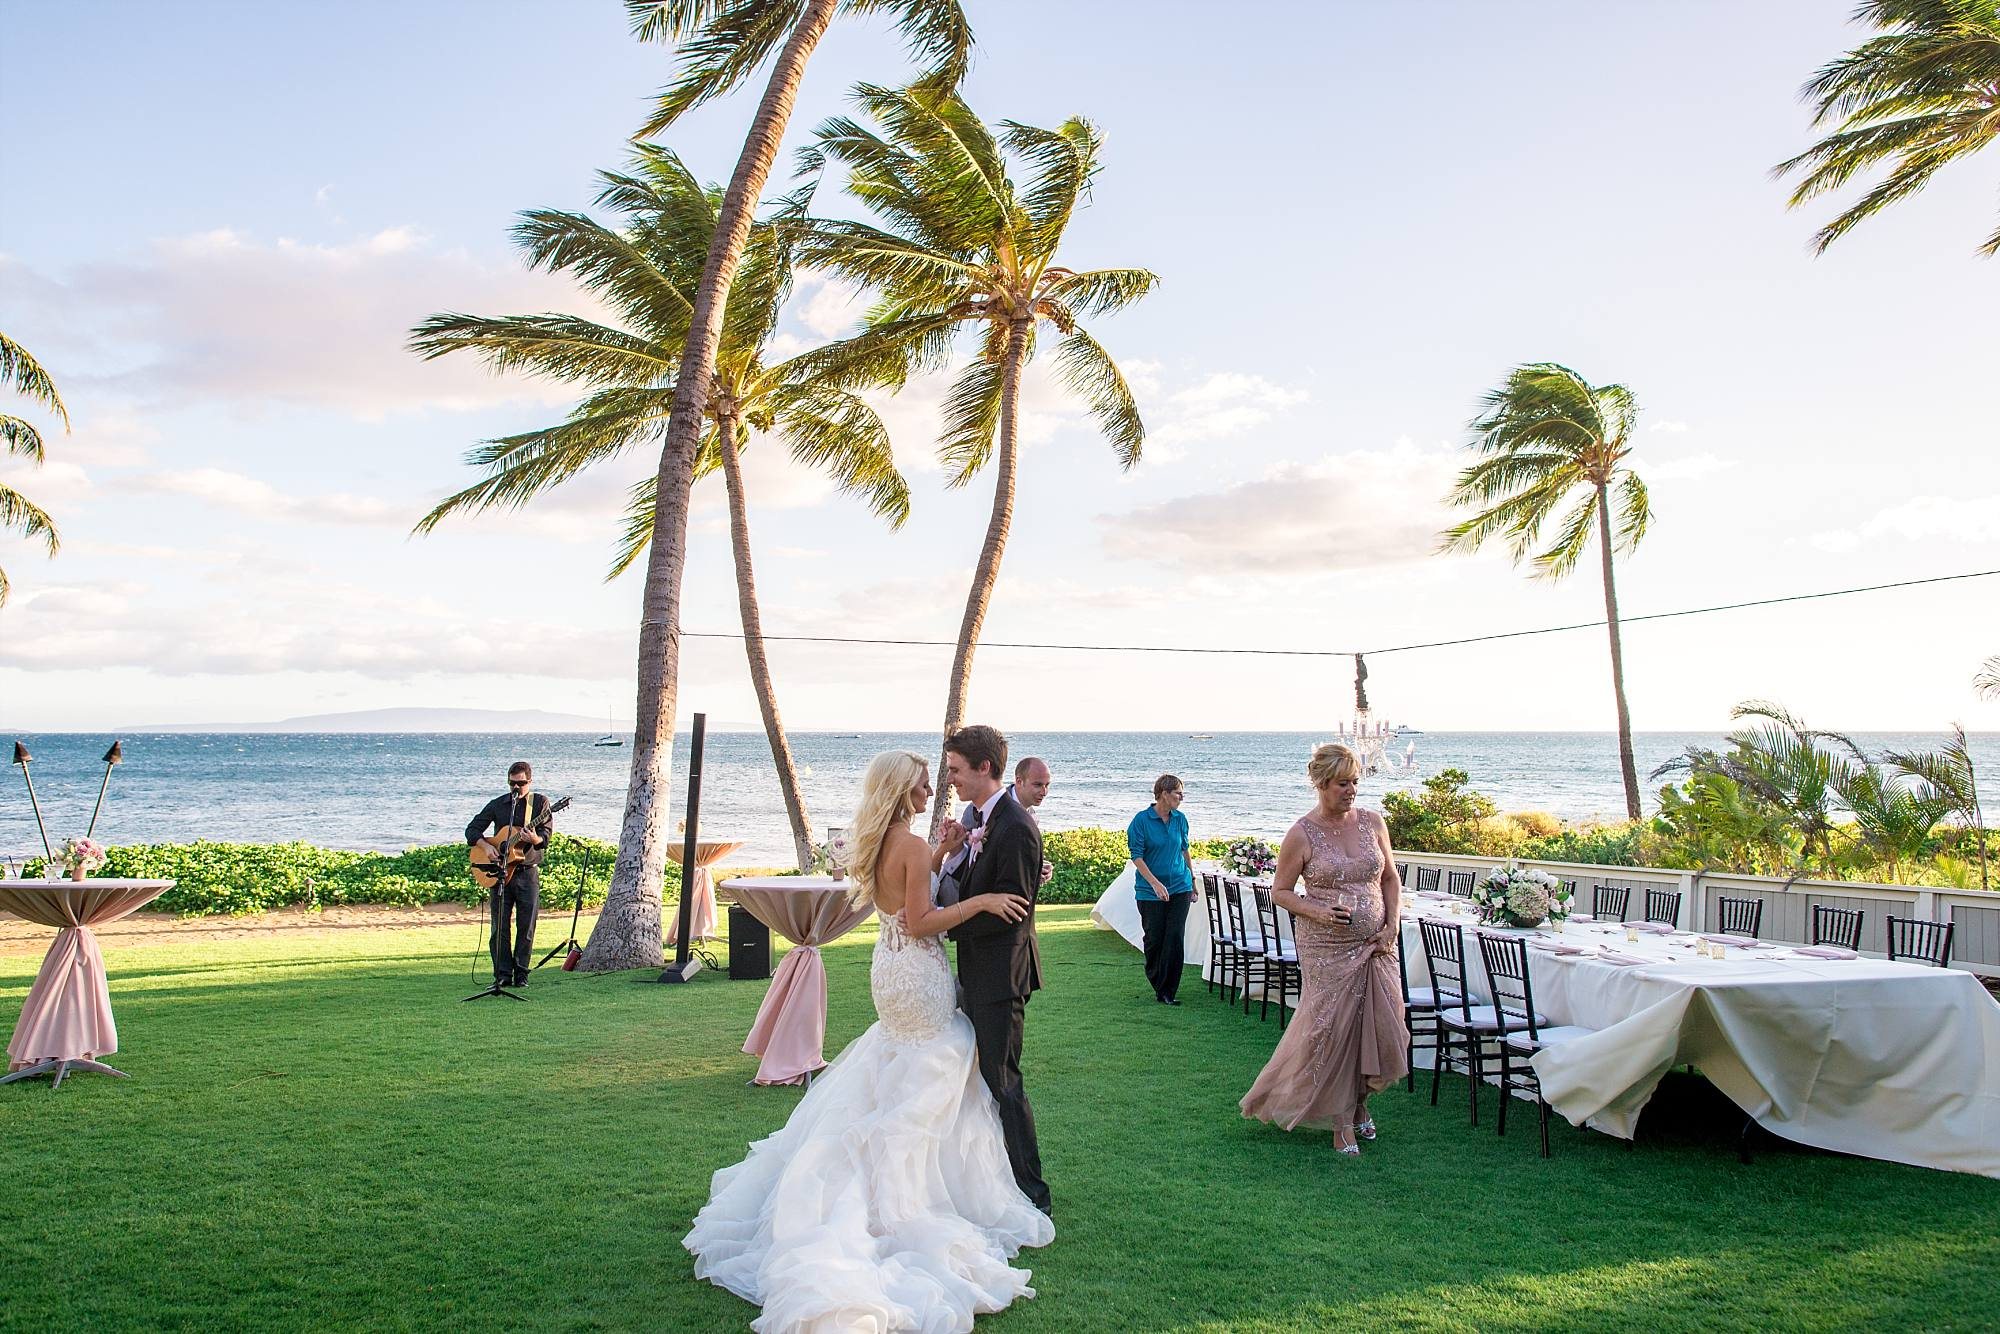 bride and groom dancing their first dance at their tropical wedding with palm trees swaying in the wind behind them